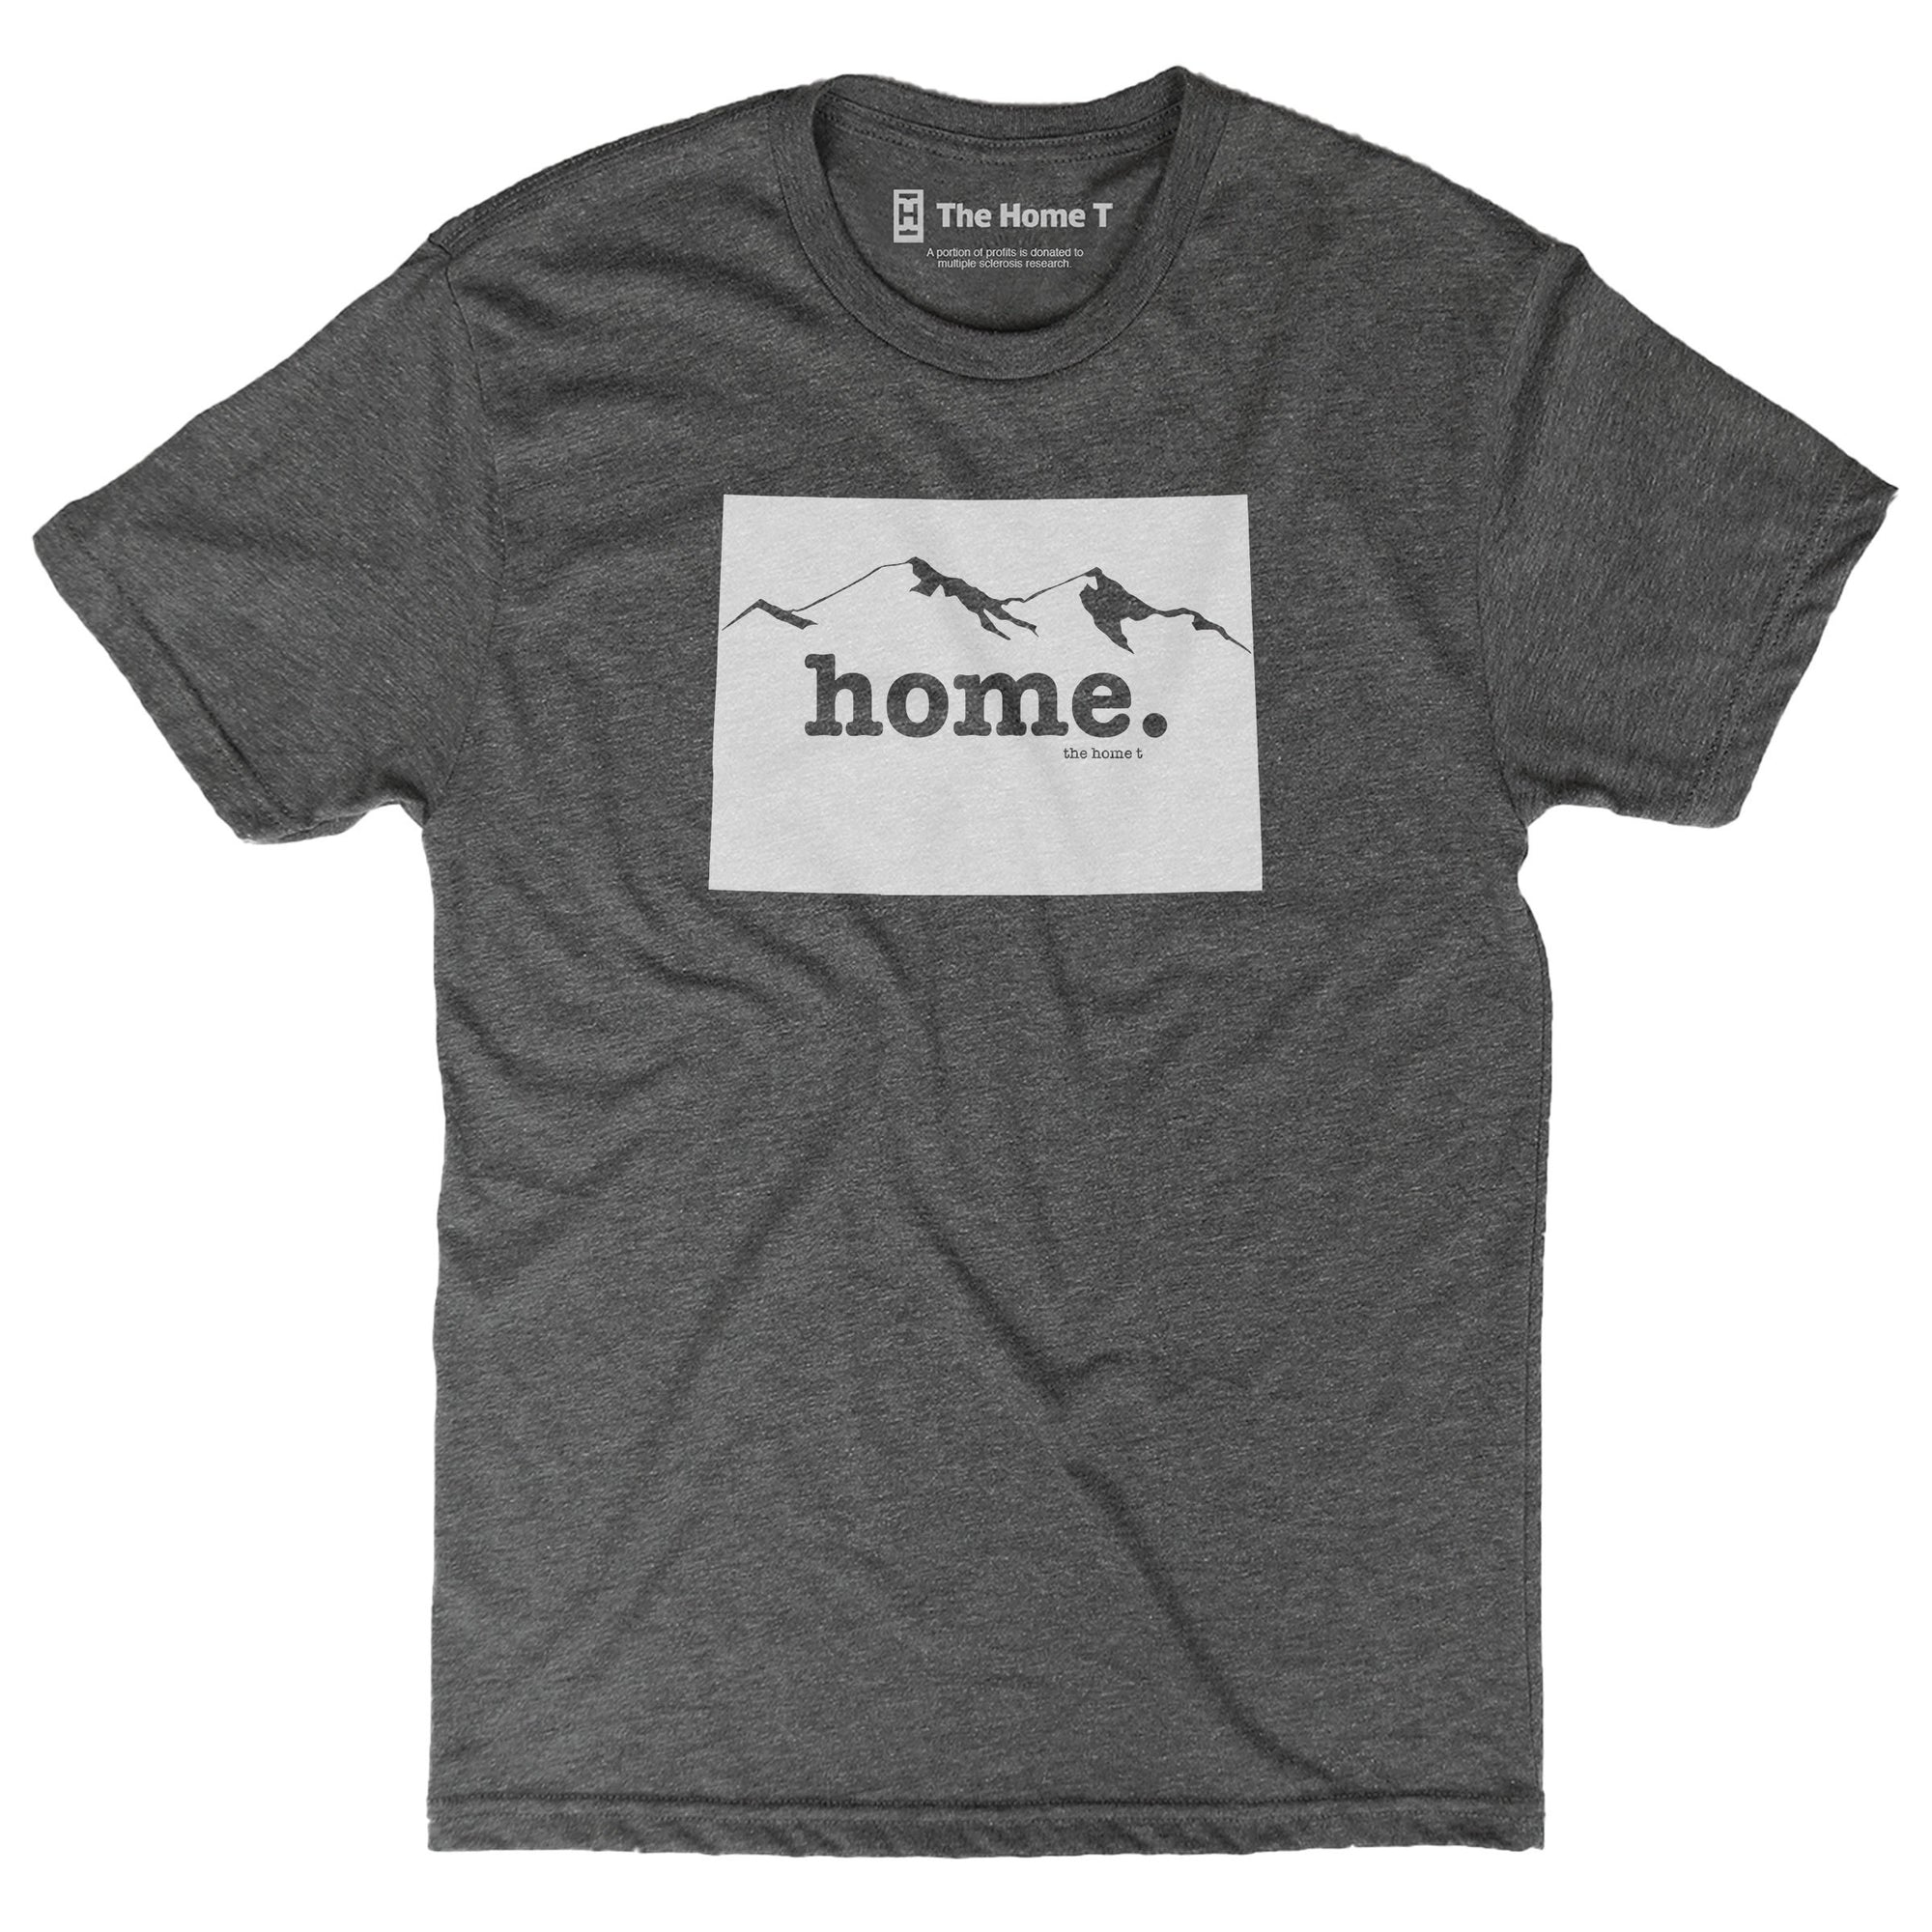 Colorado Home T Original Crew The Home T XXL Grey